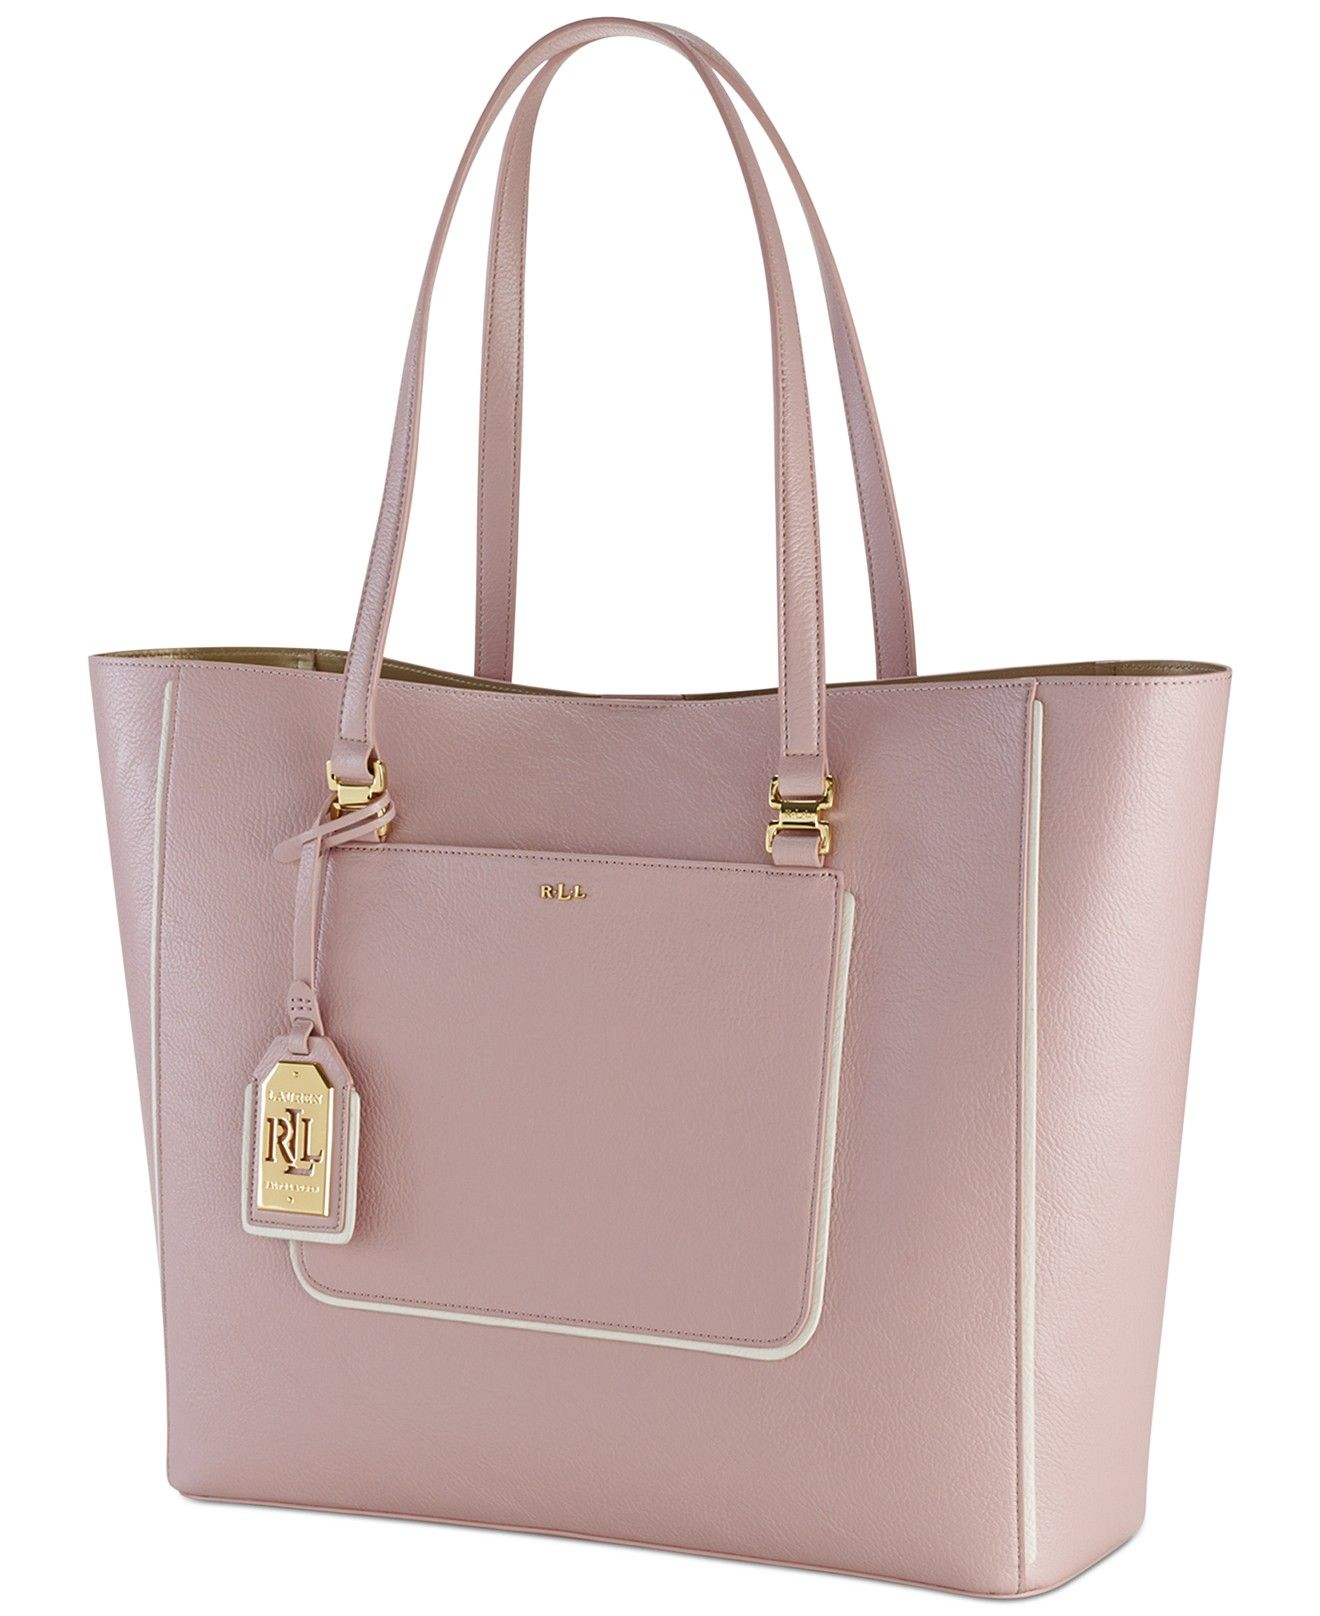 468e3f43070e Lauren Ralph Lauren Dorset Tote - Sale   Clearance - Handbags   Accessories  - Macy s